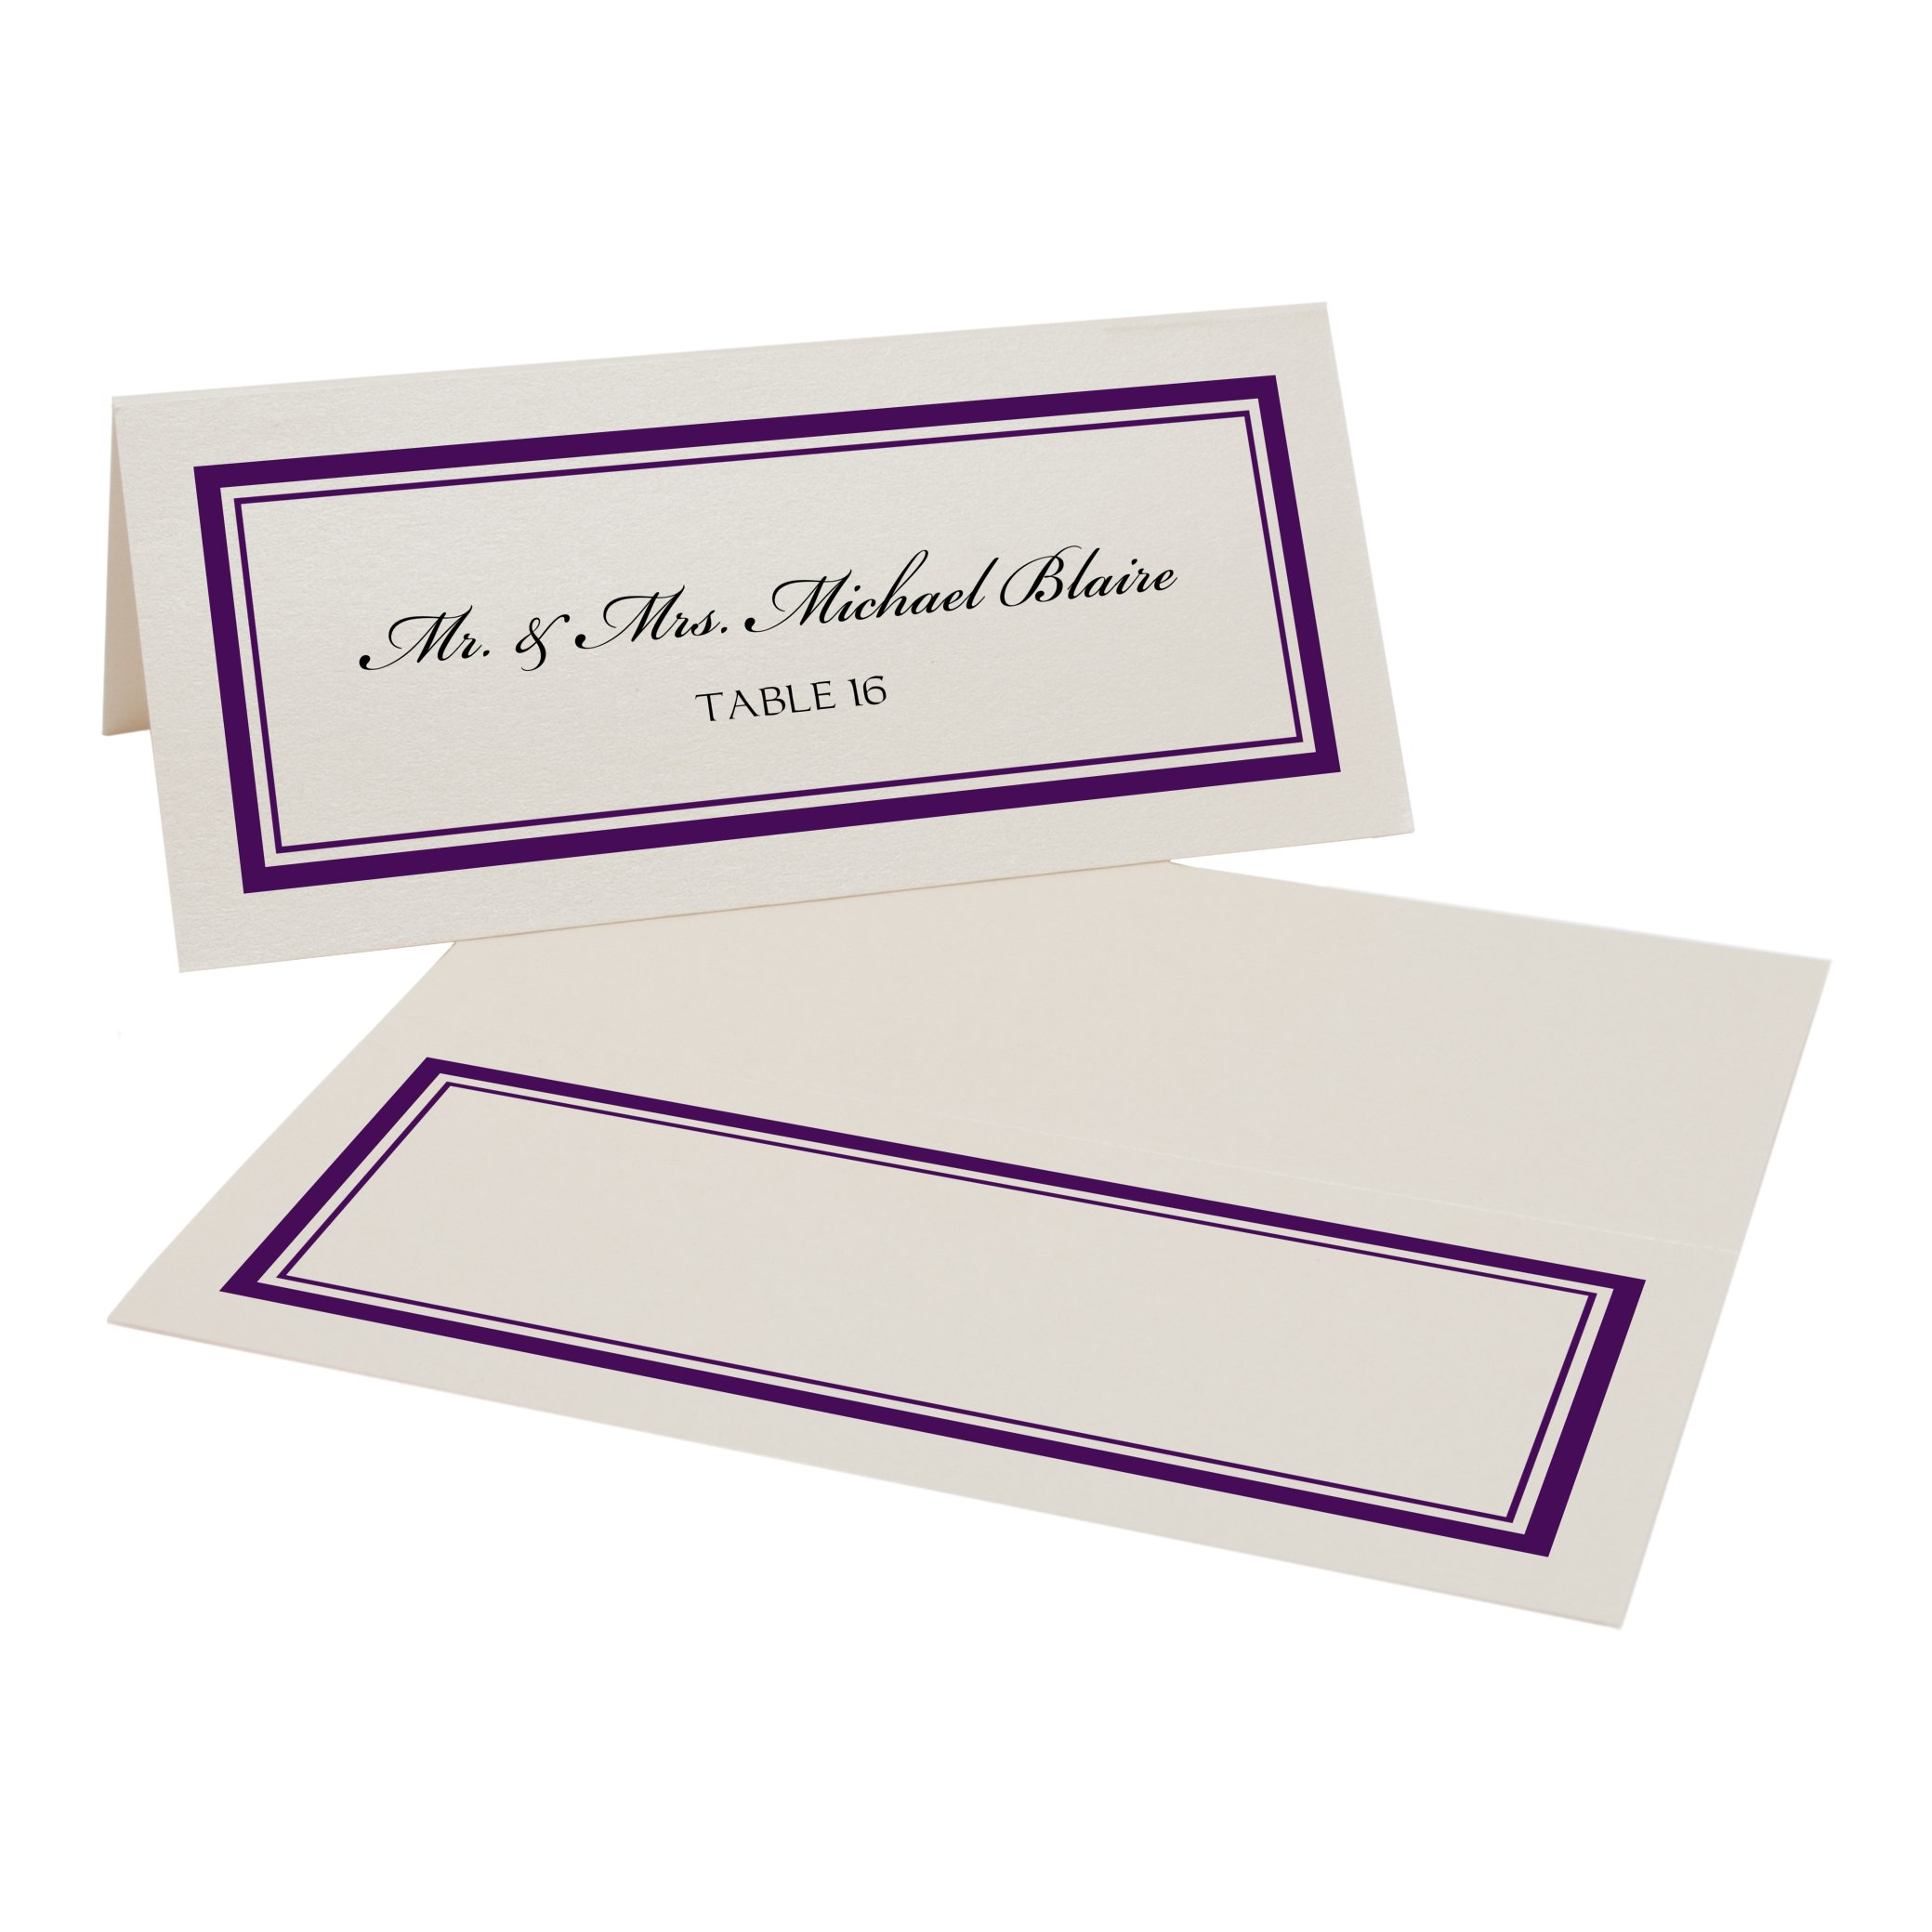 Double Line Border Place Cards, Champagne, Eggplant, Set of 375 by Documents and Designs